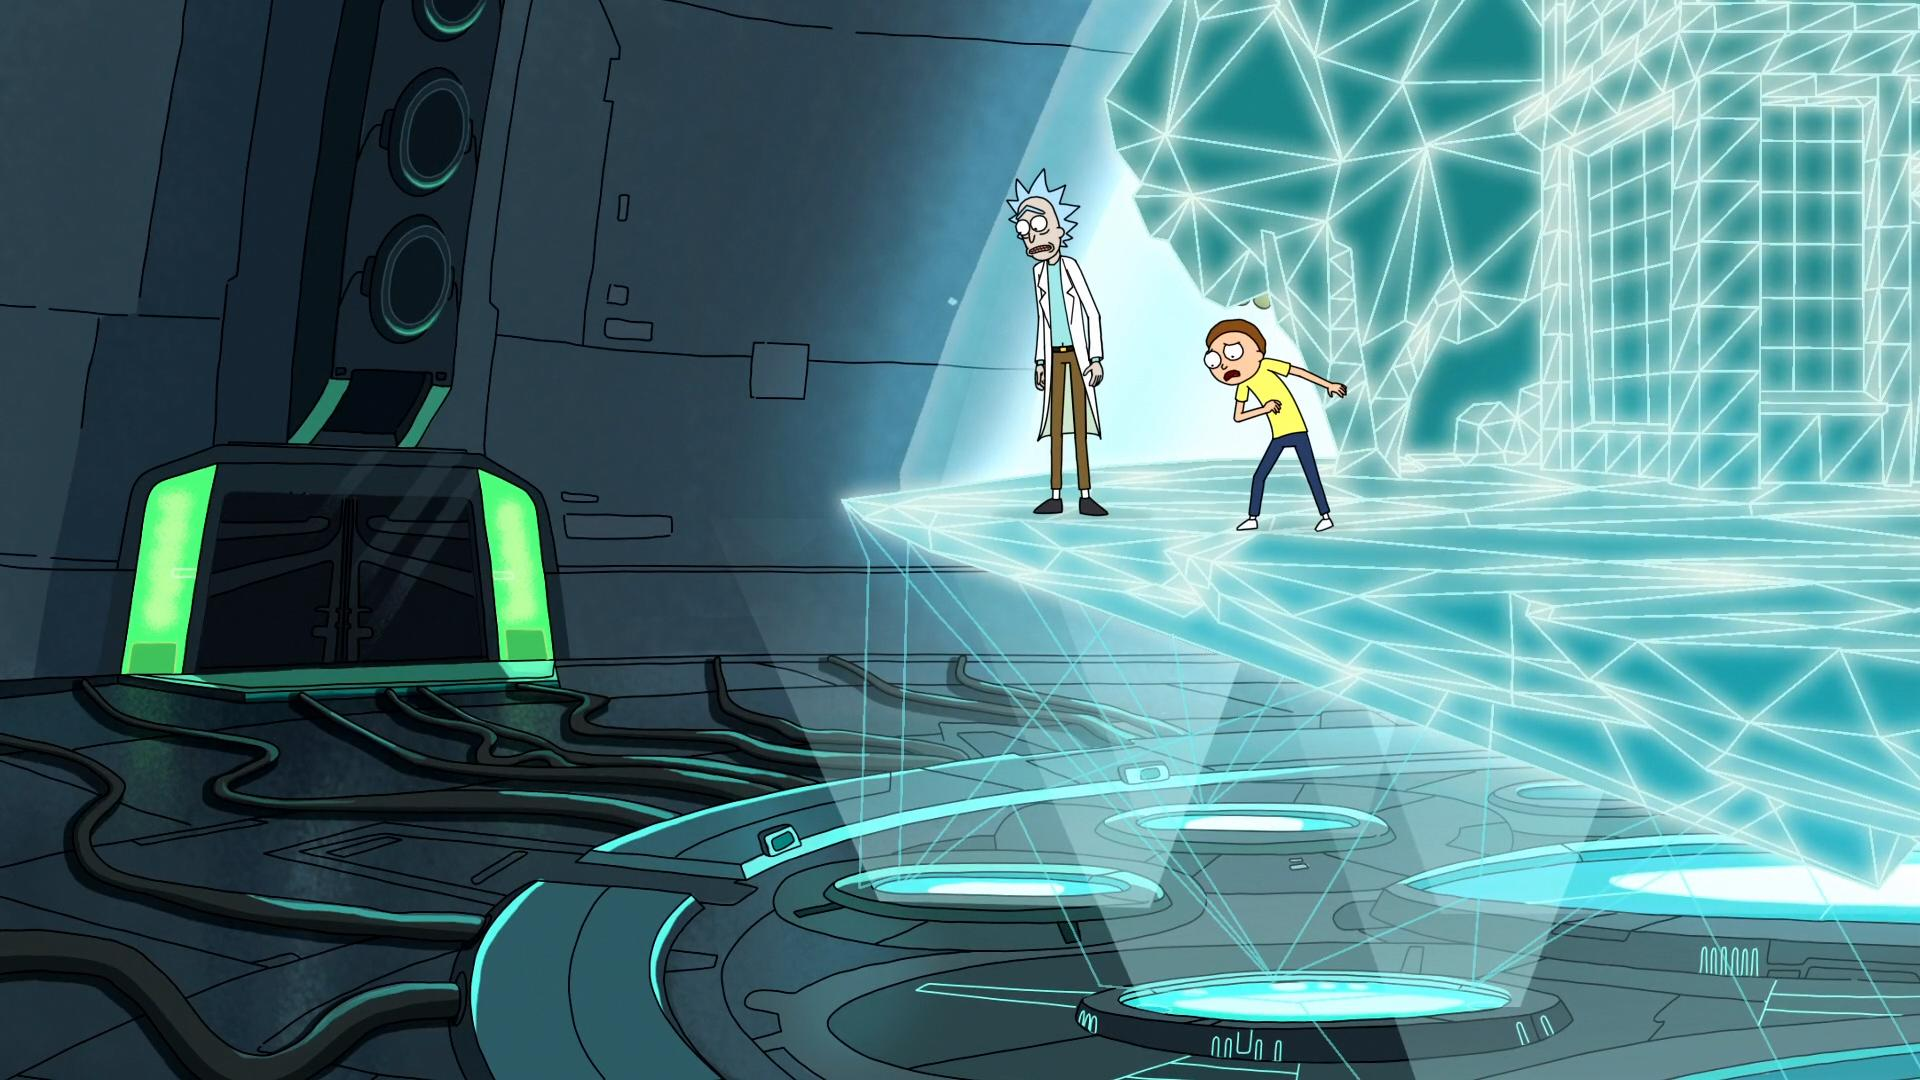 Rick And Morty Hd Wallpaper Background Image 1920x1080